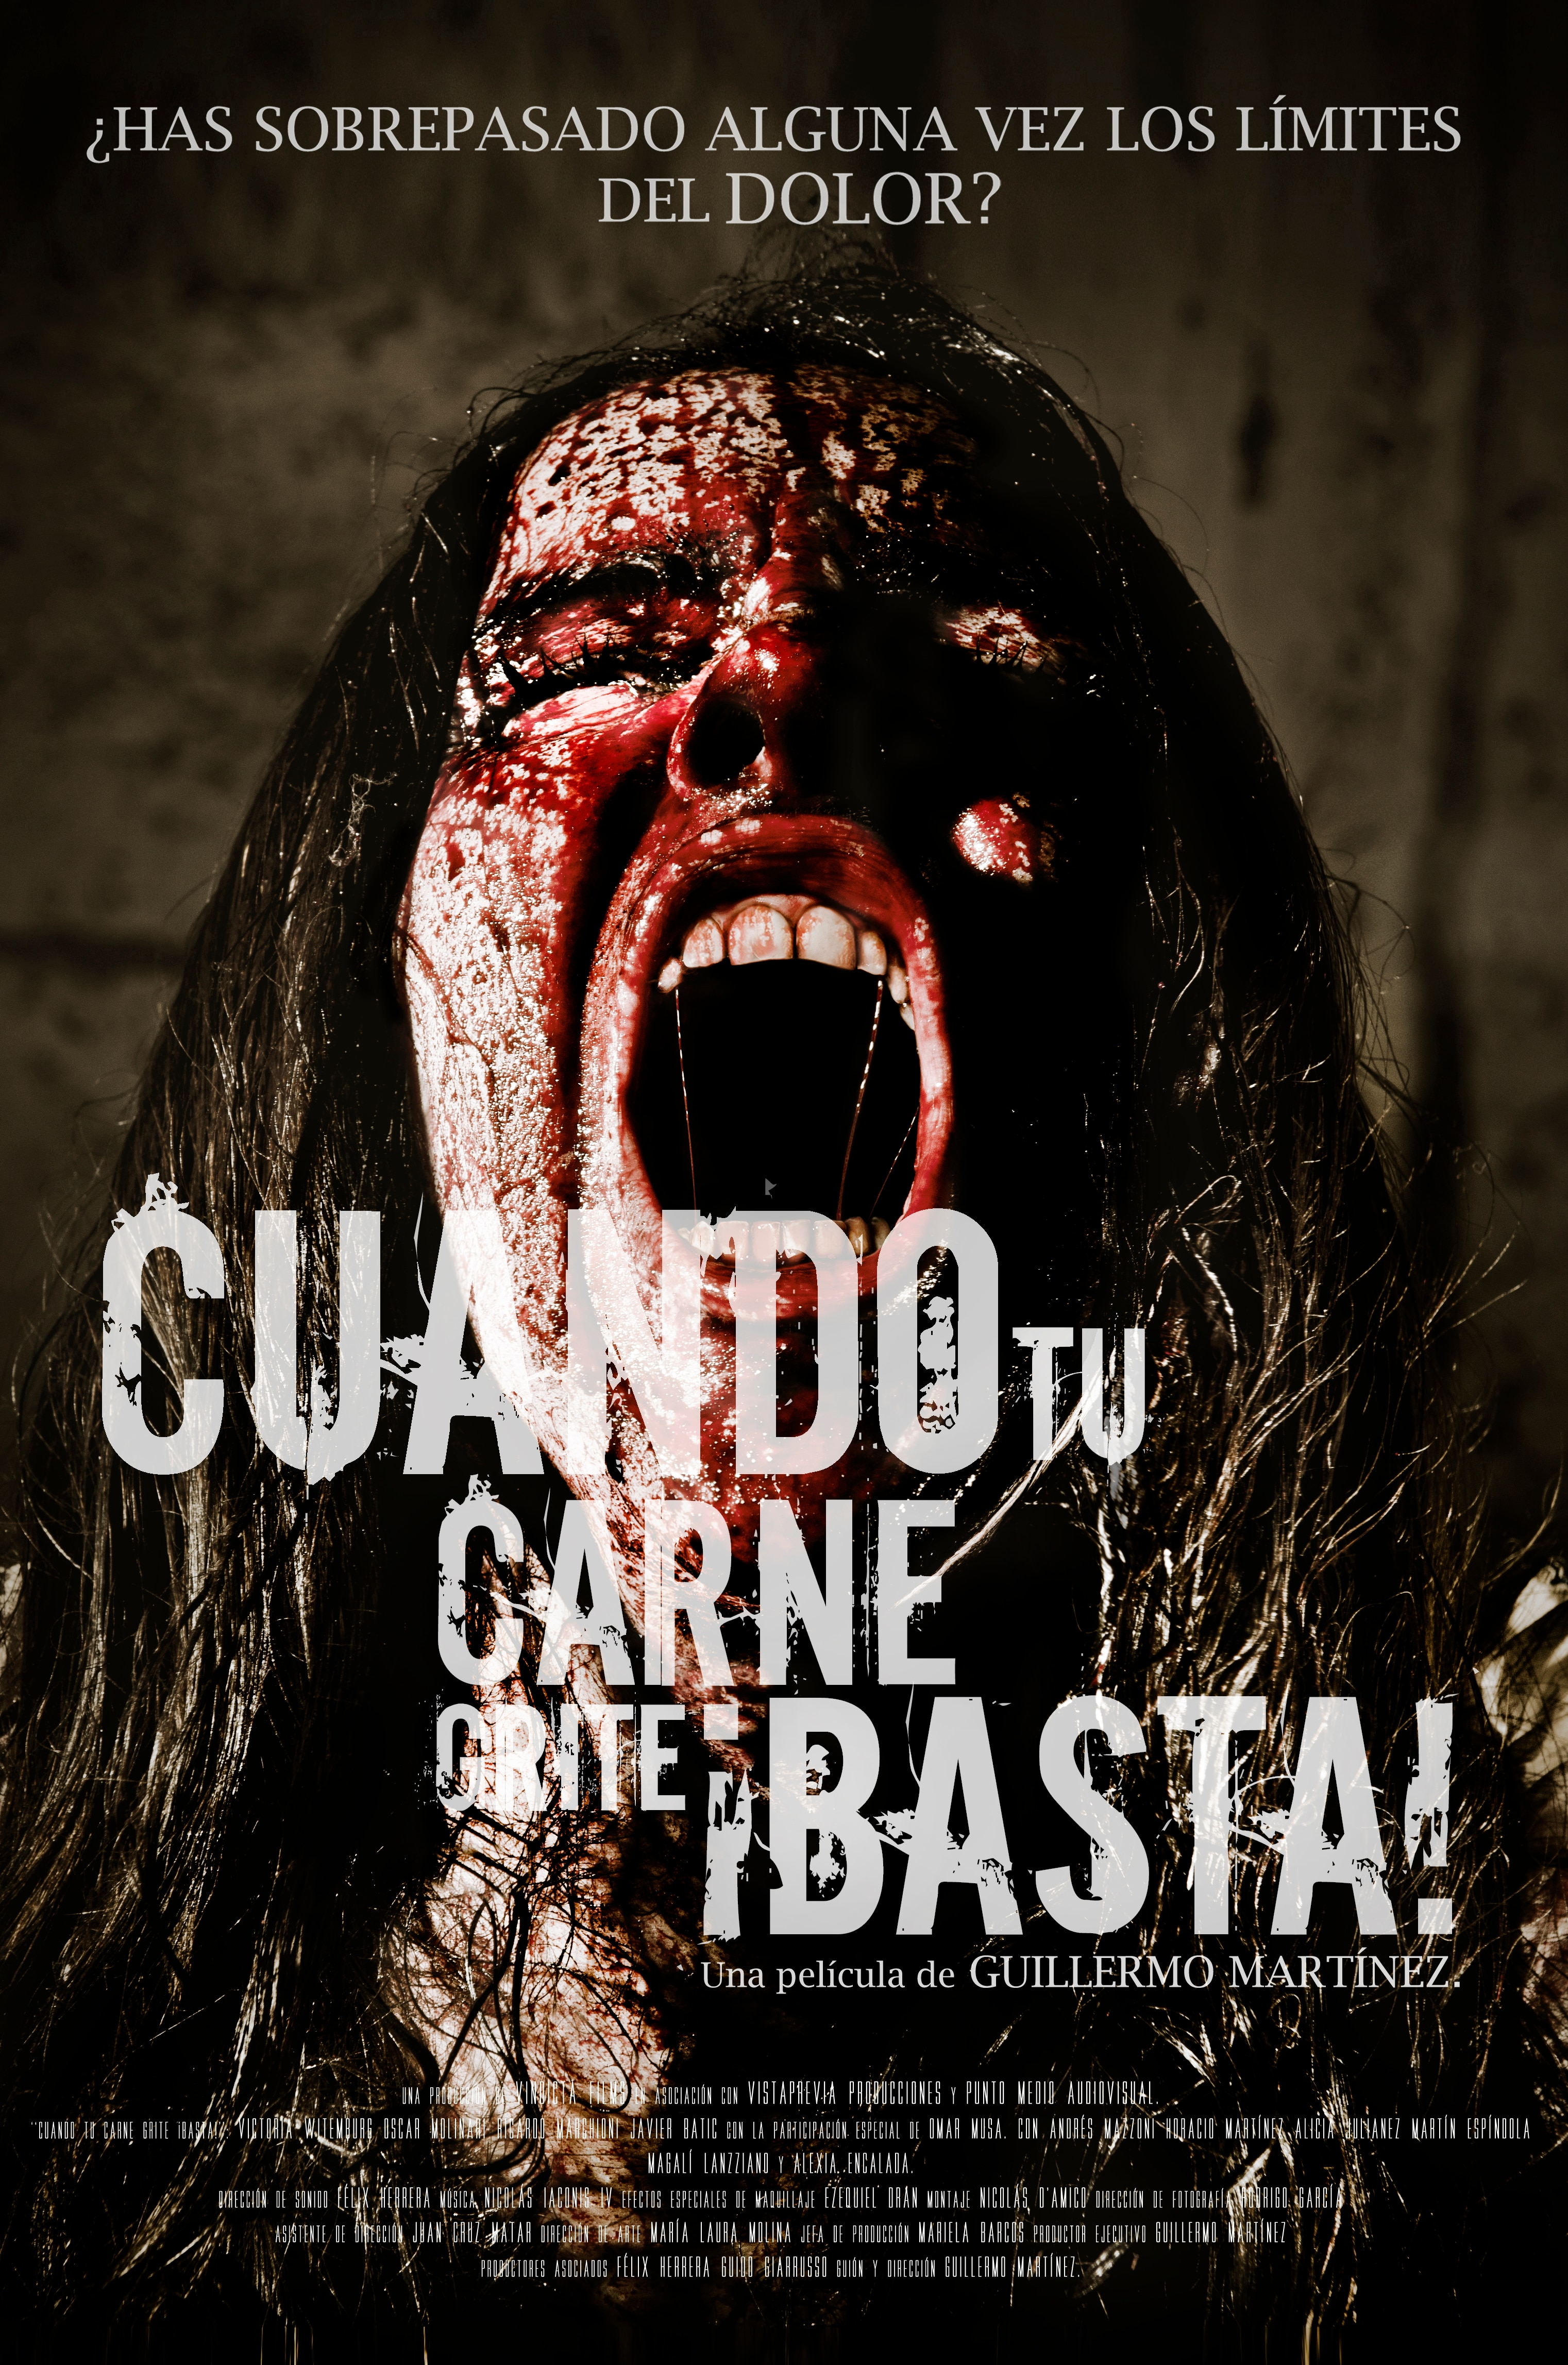 when your flesh screams - When Your Flesh Screams! (Cuando tu Carne Grite Basta) - New Poster and More